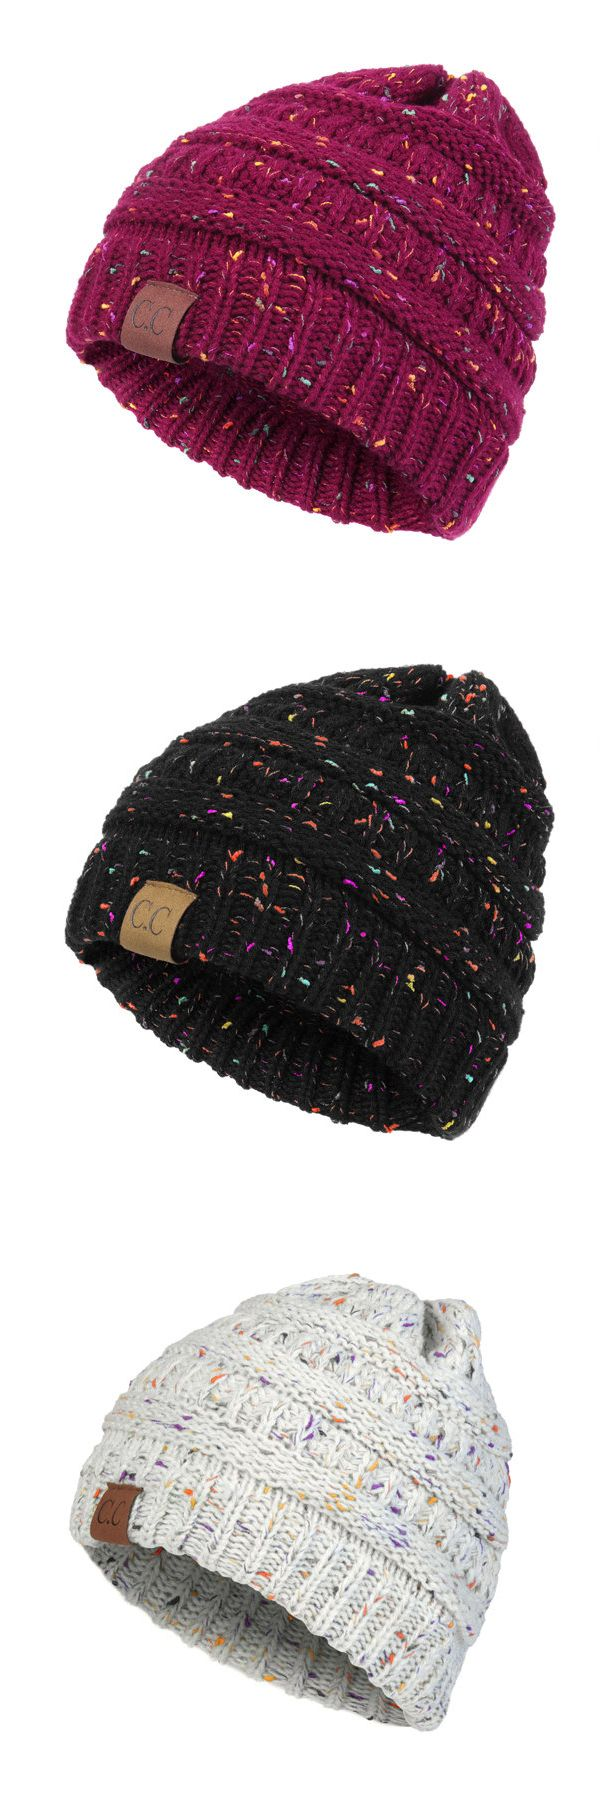 Womens Warm Soft CC Label Decorated Crochet Knitting Bonnet Hats Outdoor Snow Stripes Beanies Cap